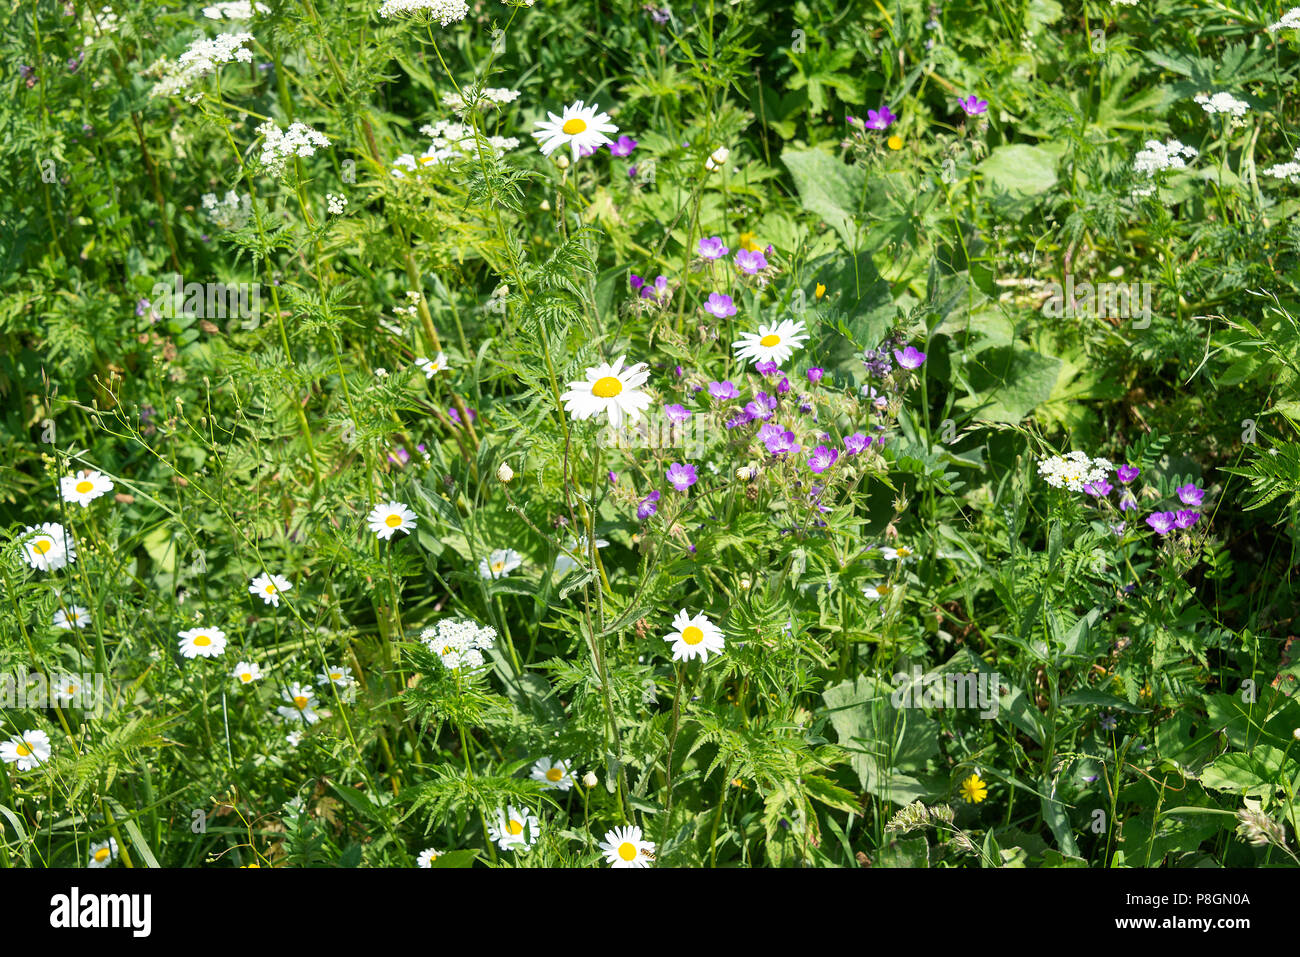 Cow daisy flowers stock photos cow daisy flowers stock images alamy ox eye daisies cow parsley and meadow cranesbills wild flowers growing in the french izmirmasajfo